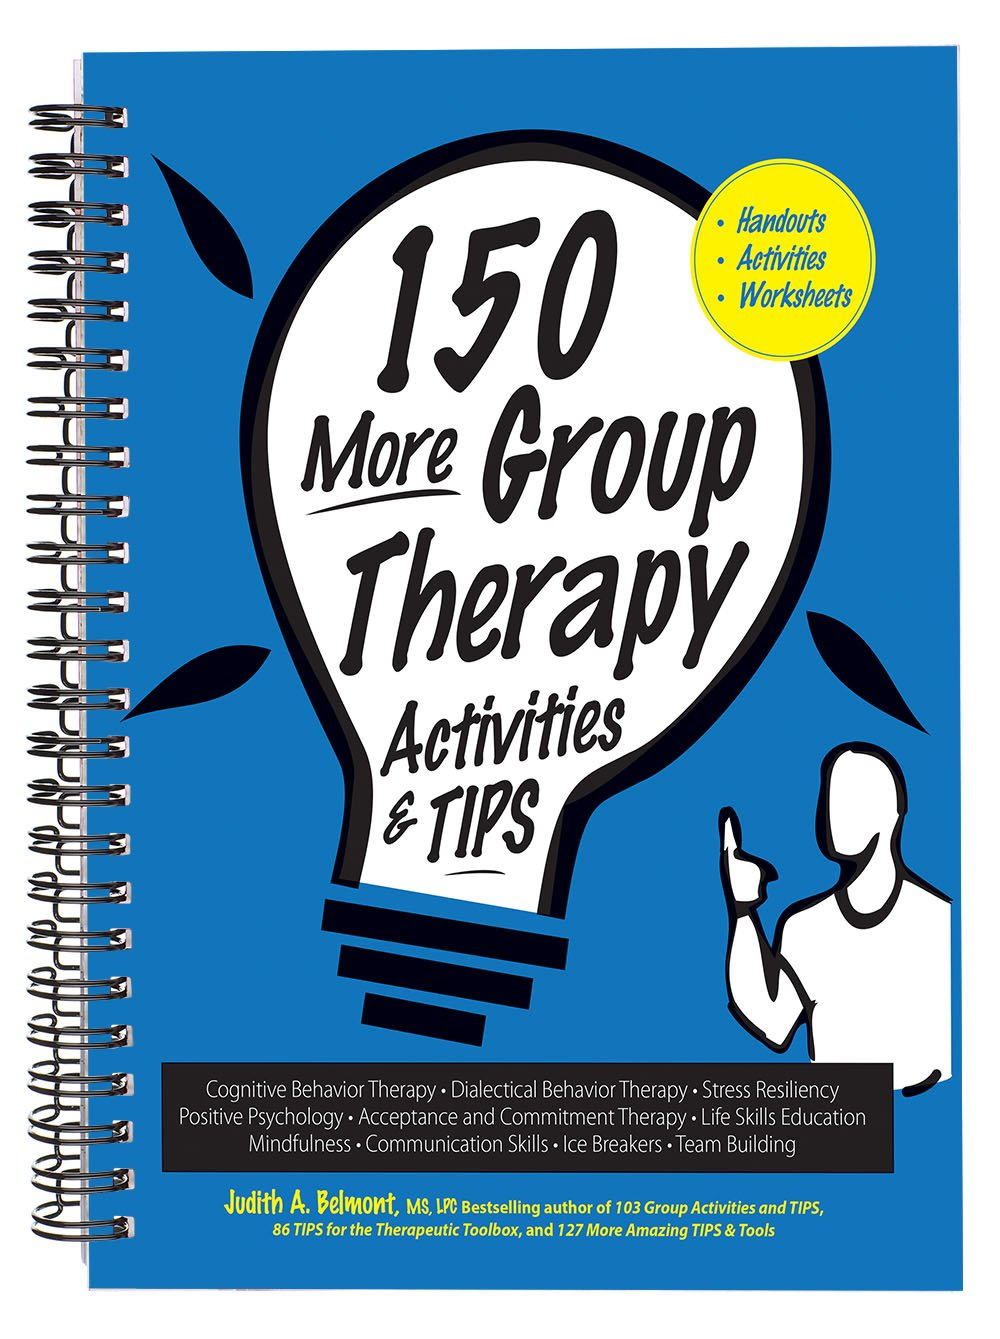 150 More Group Therapy Activities & TIPS: Judith A. Belmont: 9781683730156:  Amazon.com: Books